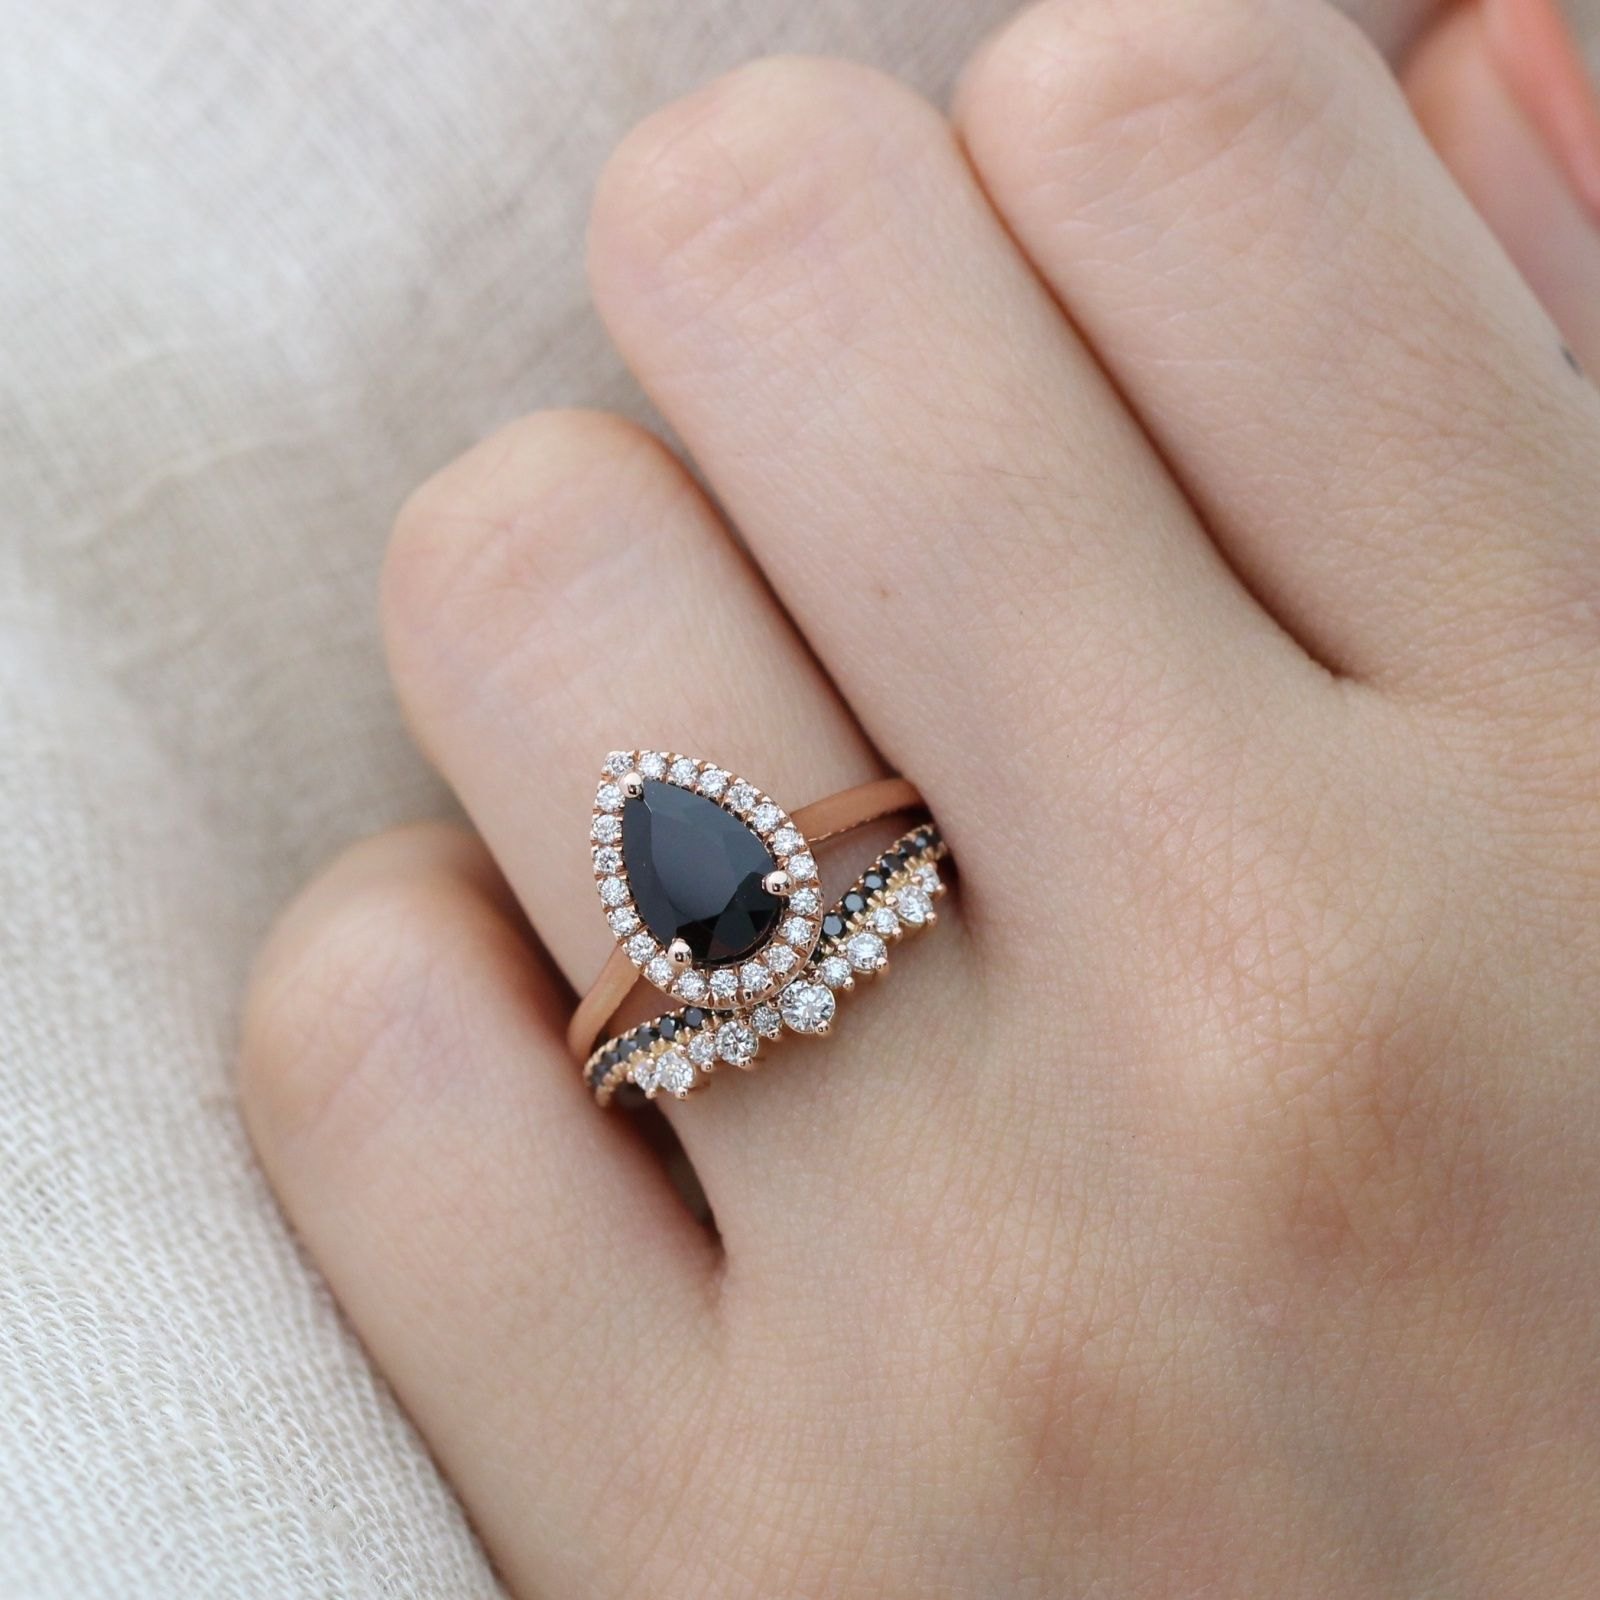 Pear Black Spinel Halo Diamond Engagement Ring In Pave Band From La More Engagement Rings Affordable Trending Engagement Rings Rose Gold Oval Engagement Ring